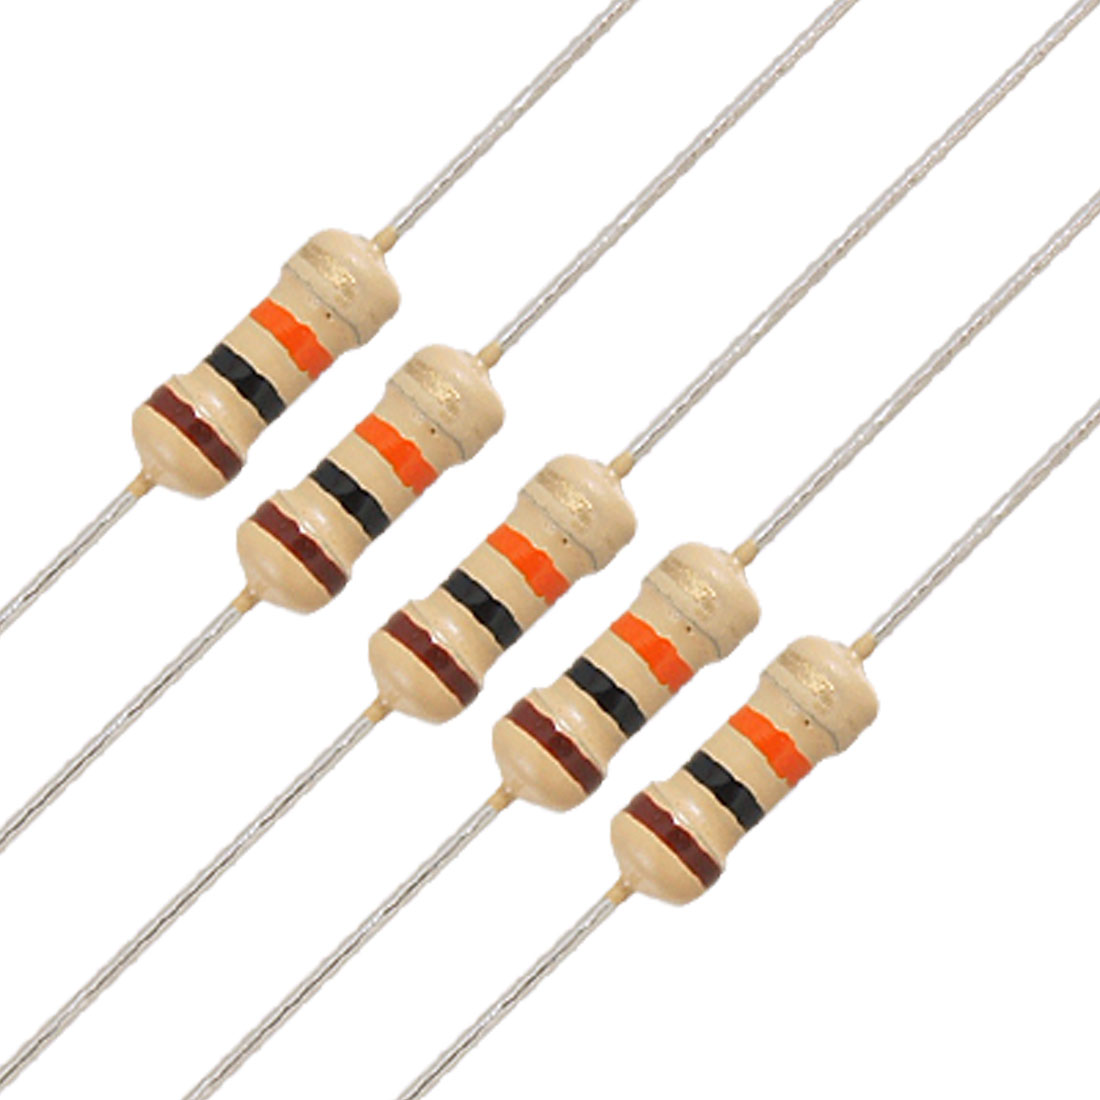 100pcs 1/4W 250V 10K Ohm Axial Lead Carbon Film Resistors